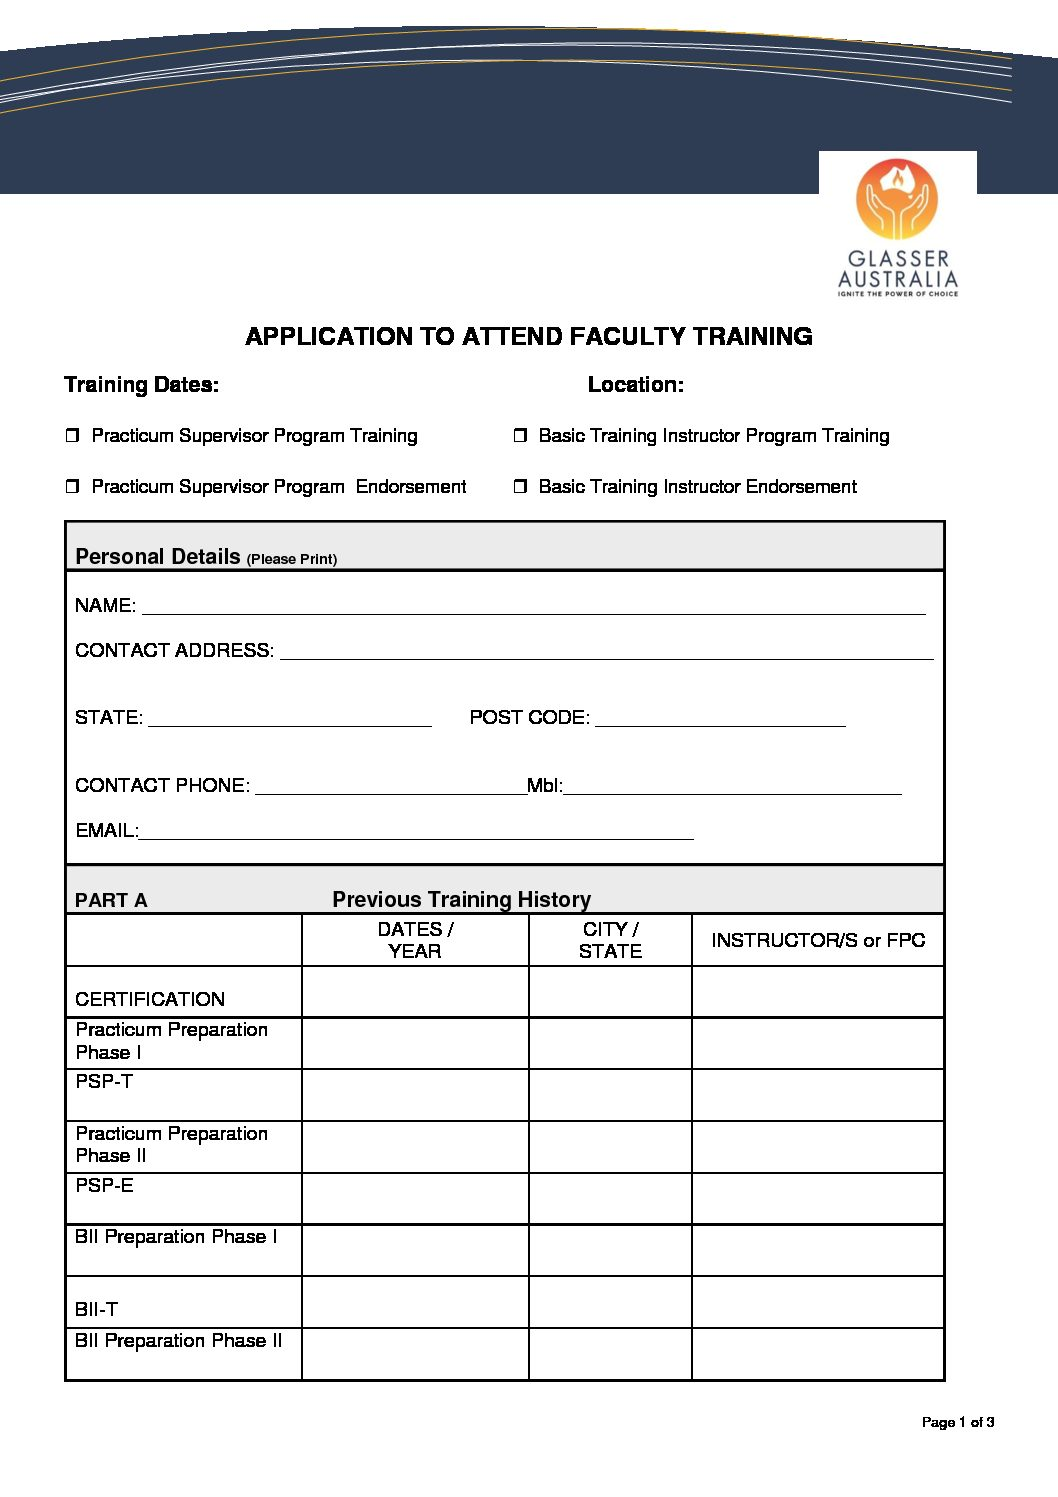 APPLICATION TO ATTEND FACULTY TRAINING 2020